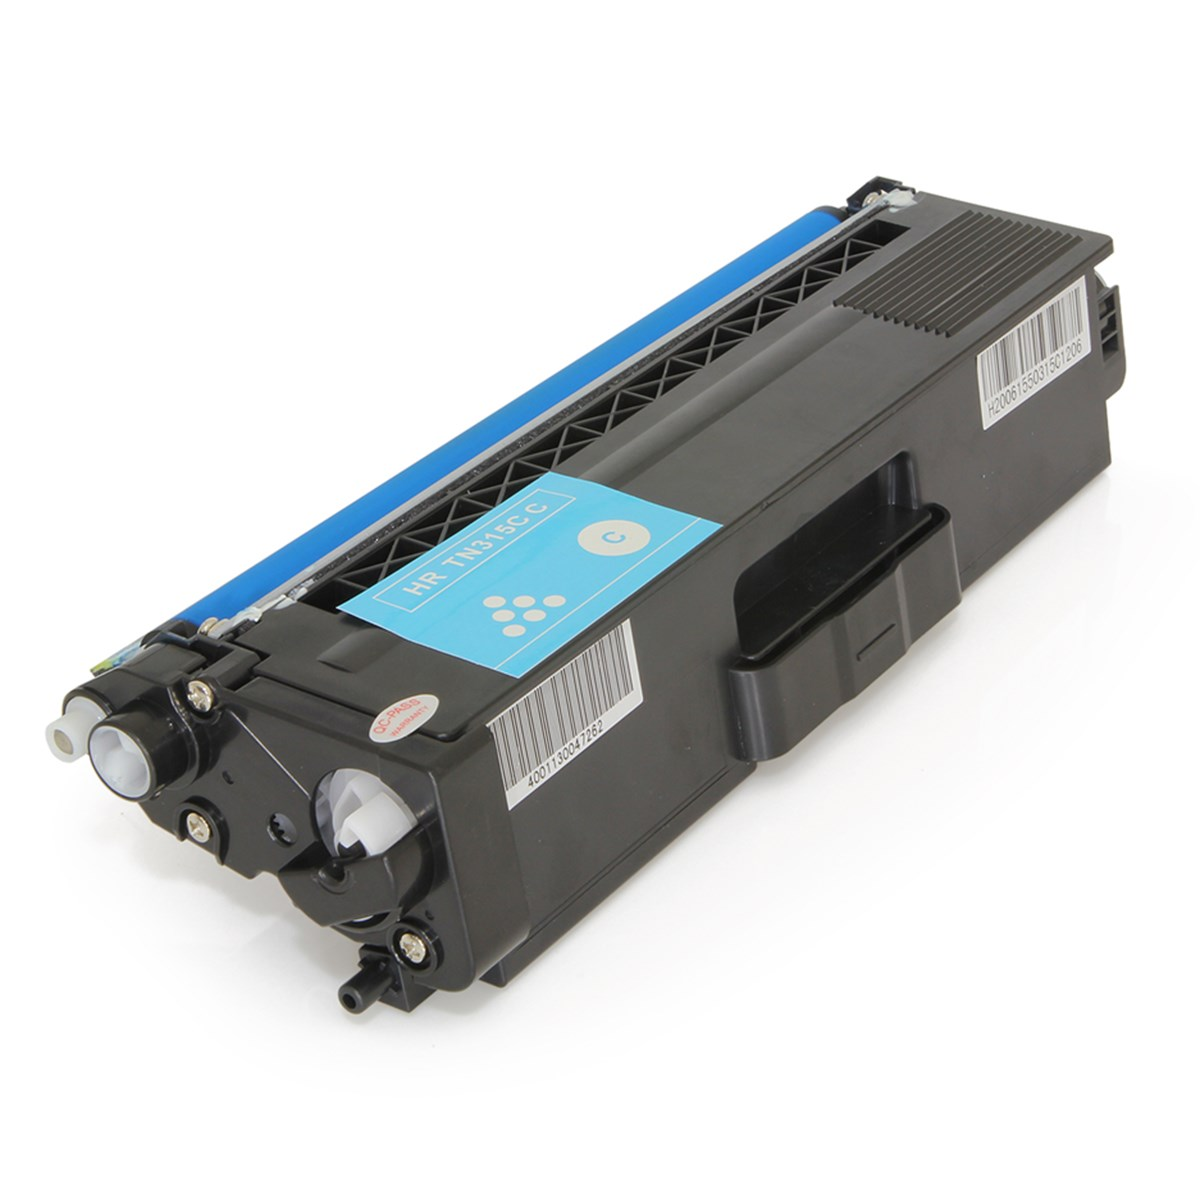 Compativel: Toner novasupri Brother TN315 MFC9970 MFC9460 HL4140 HL4150 HL4570 Ciano